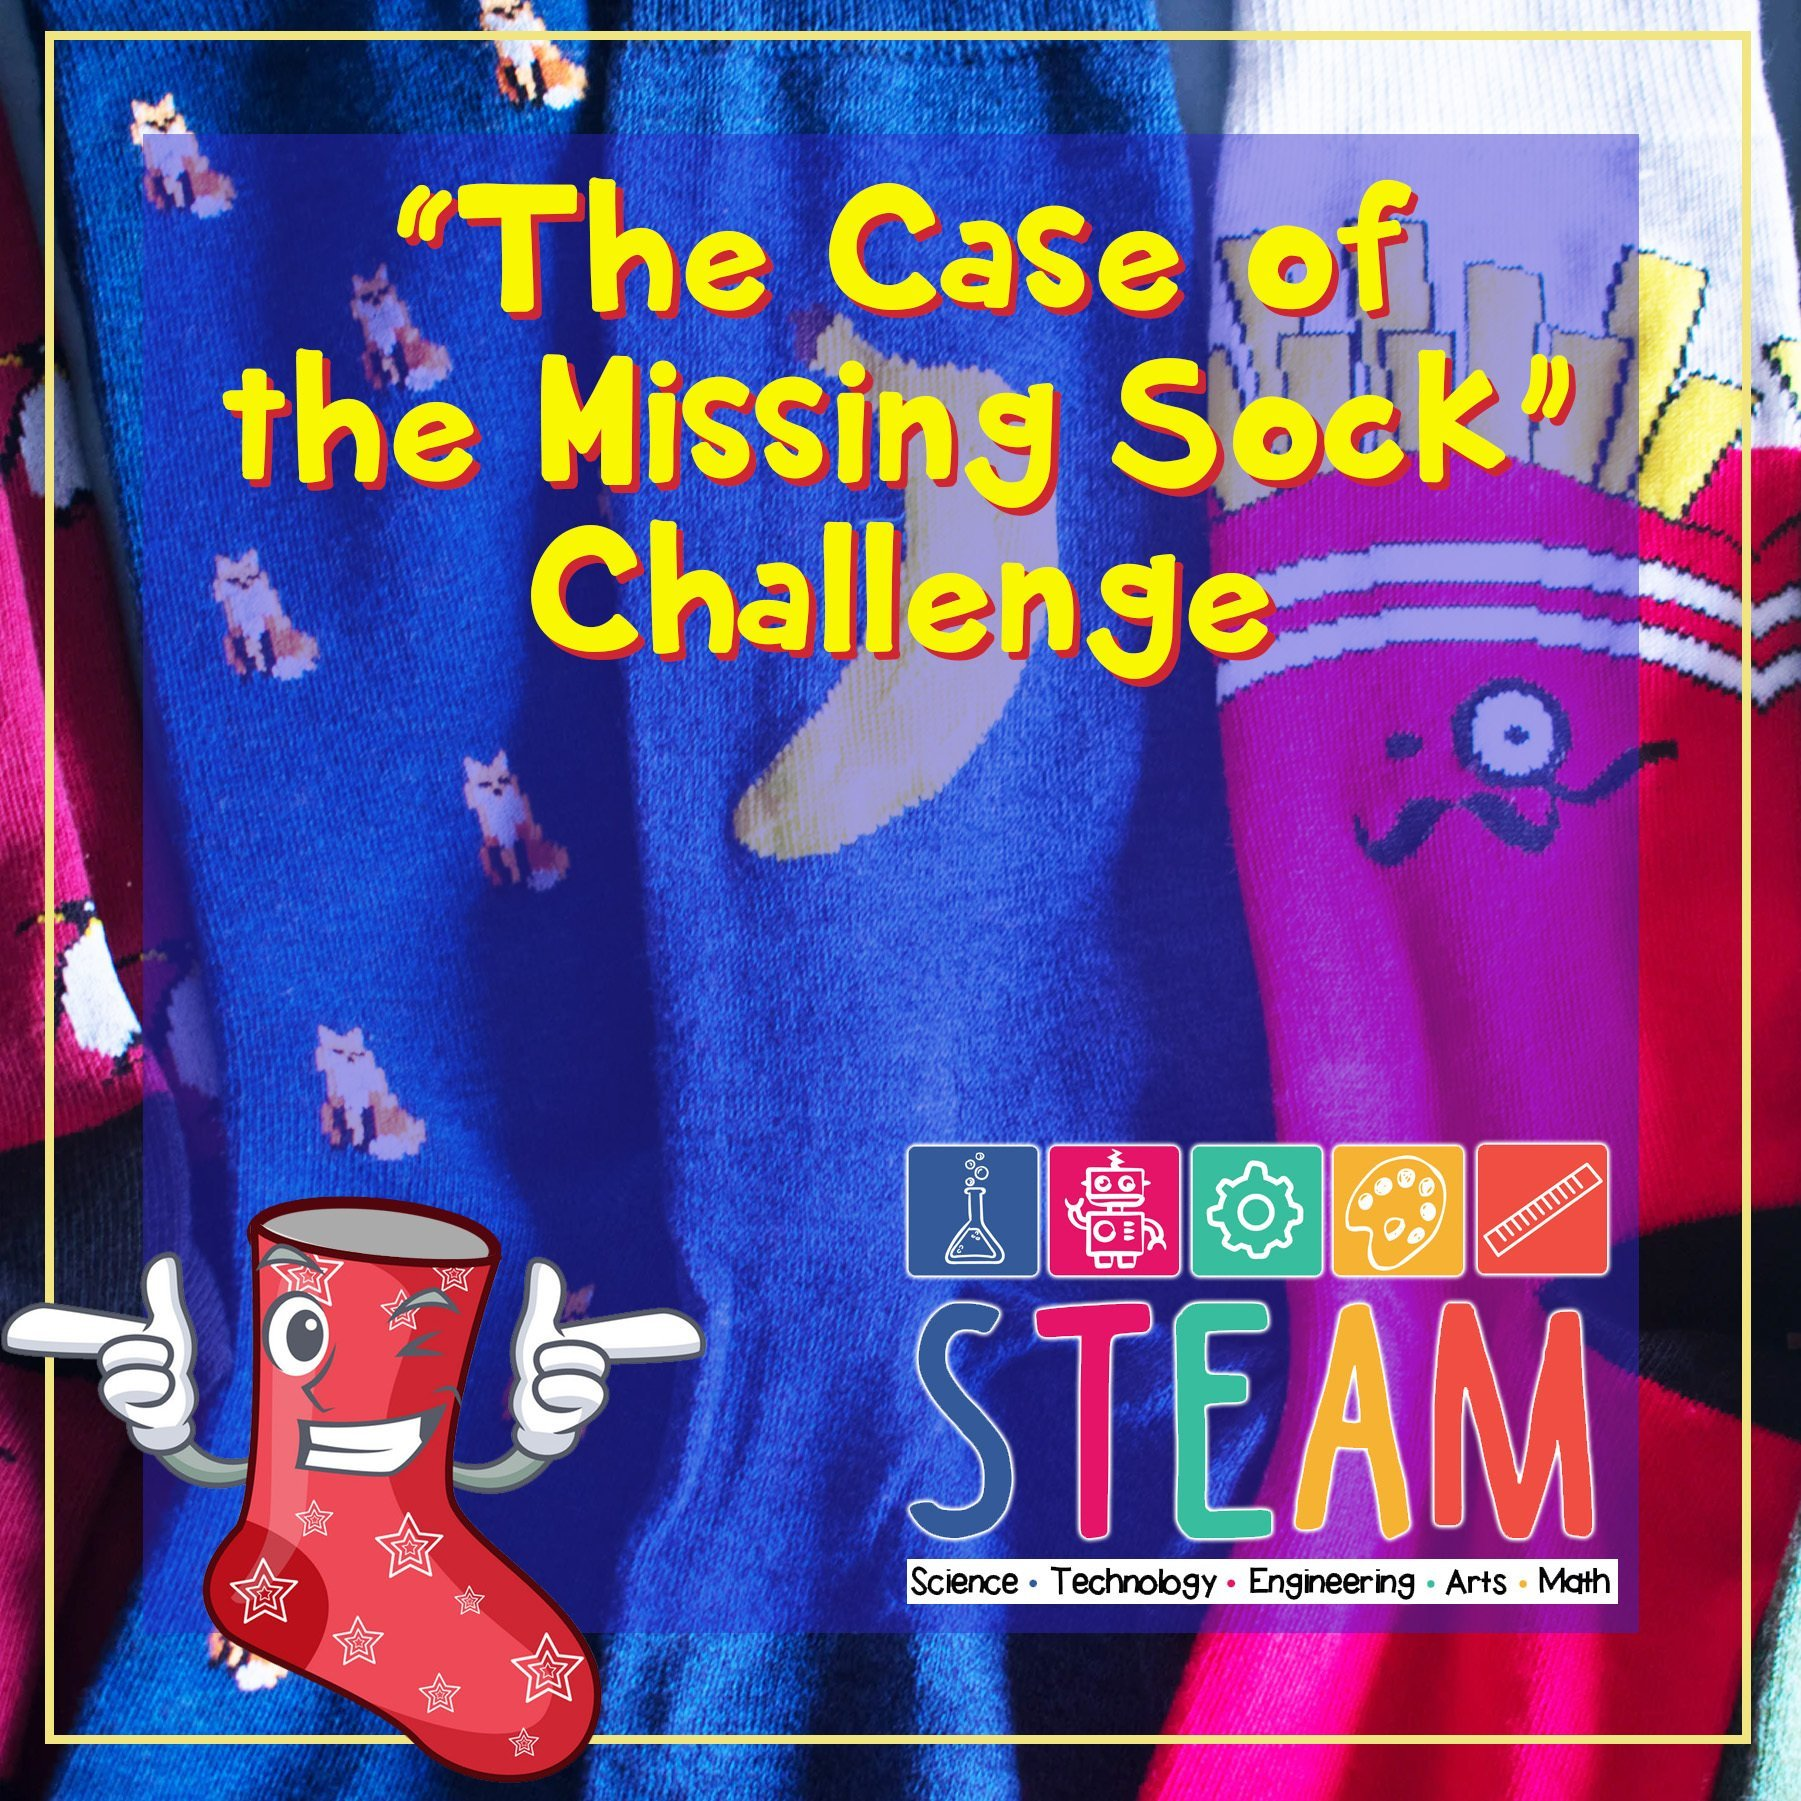 The Case of the Missing Sock Challenge